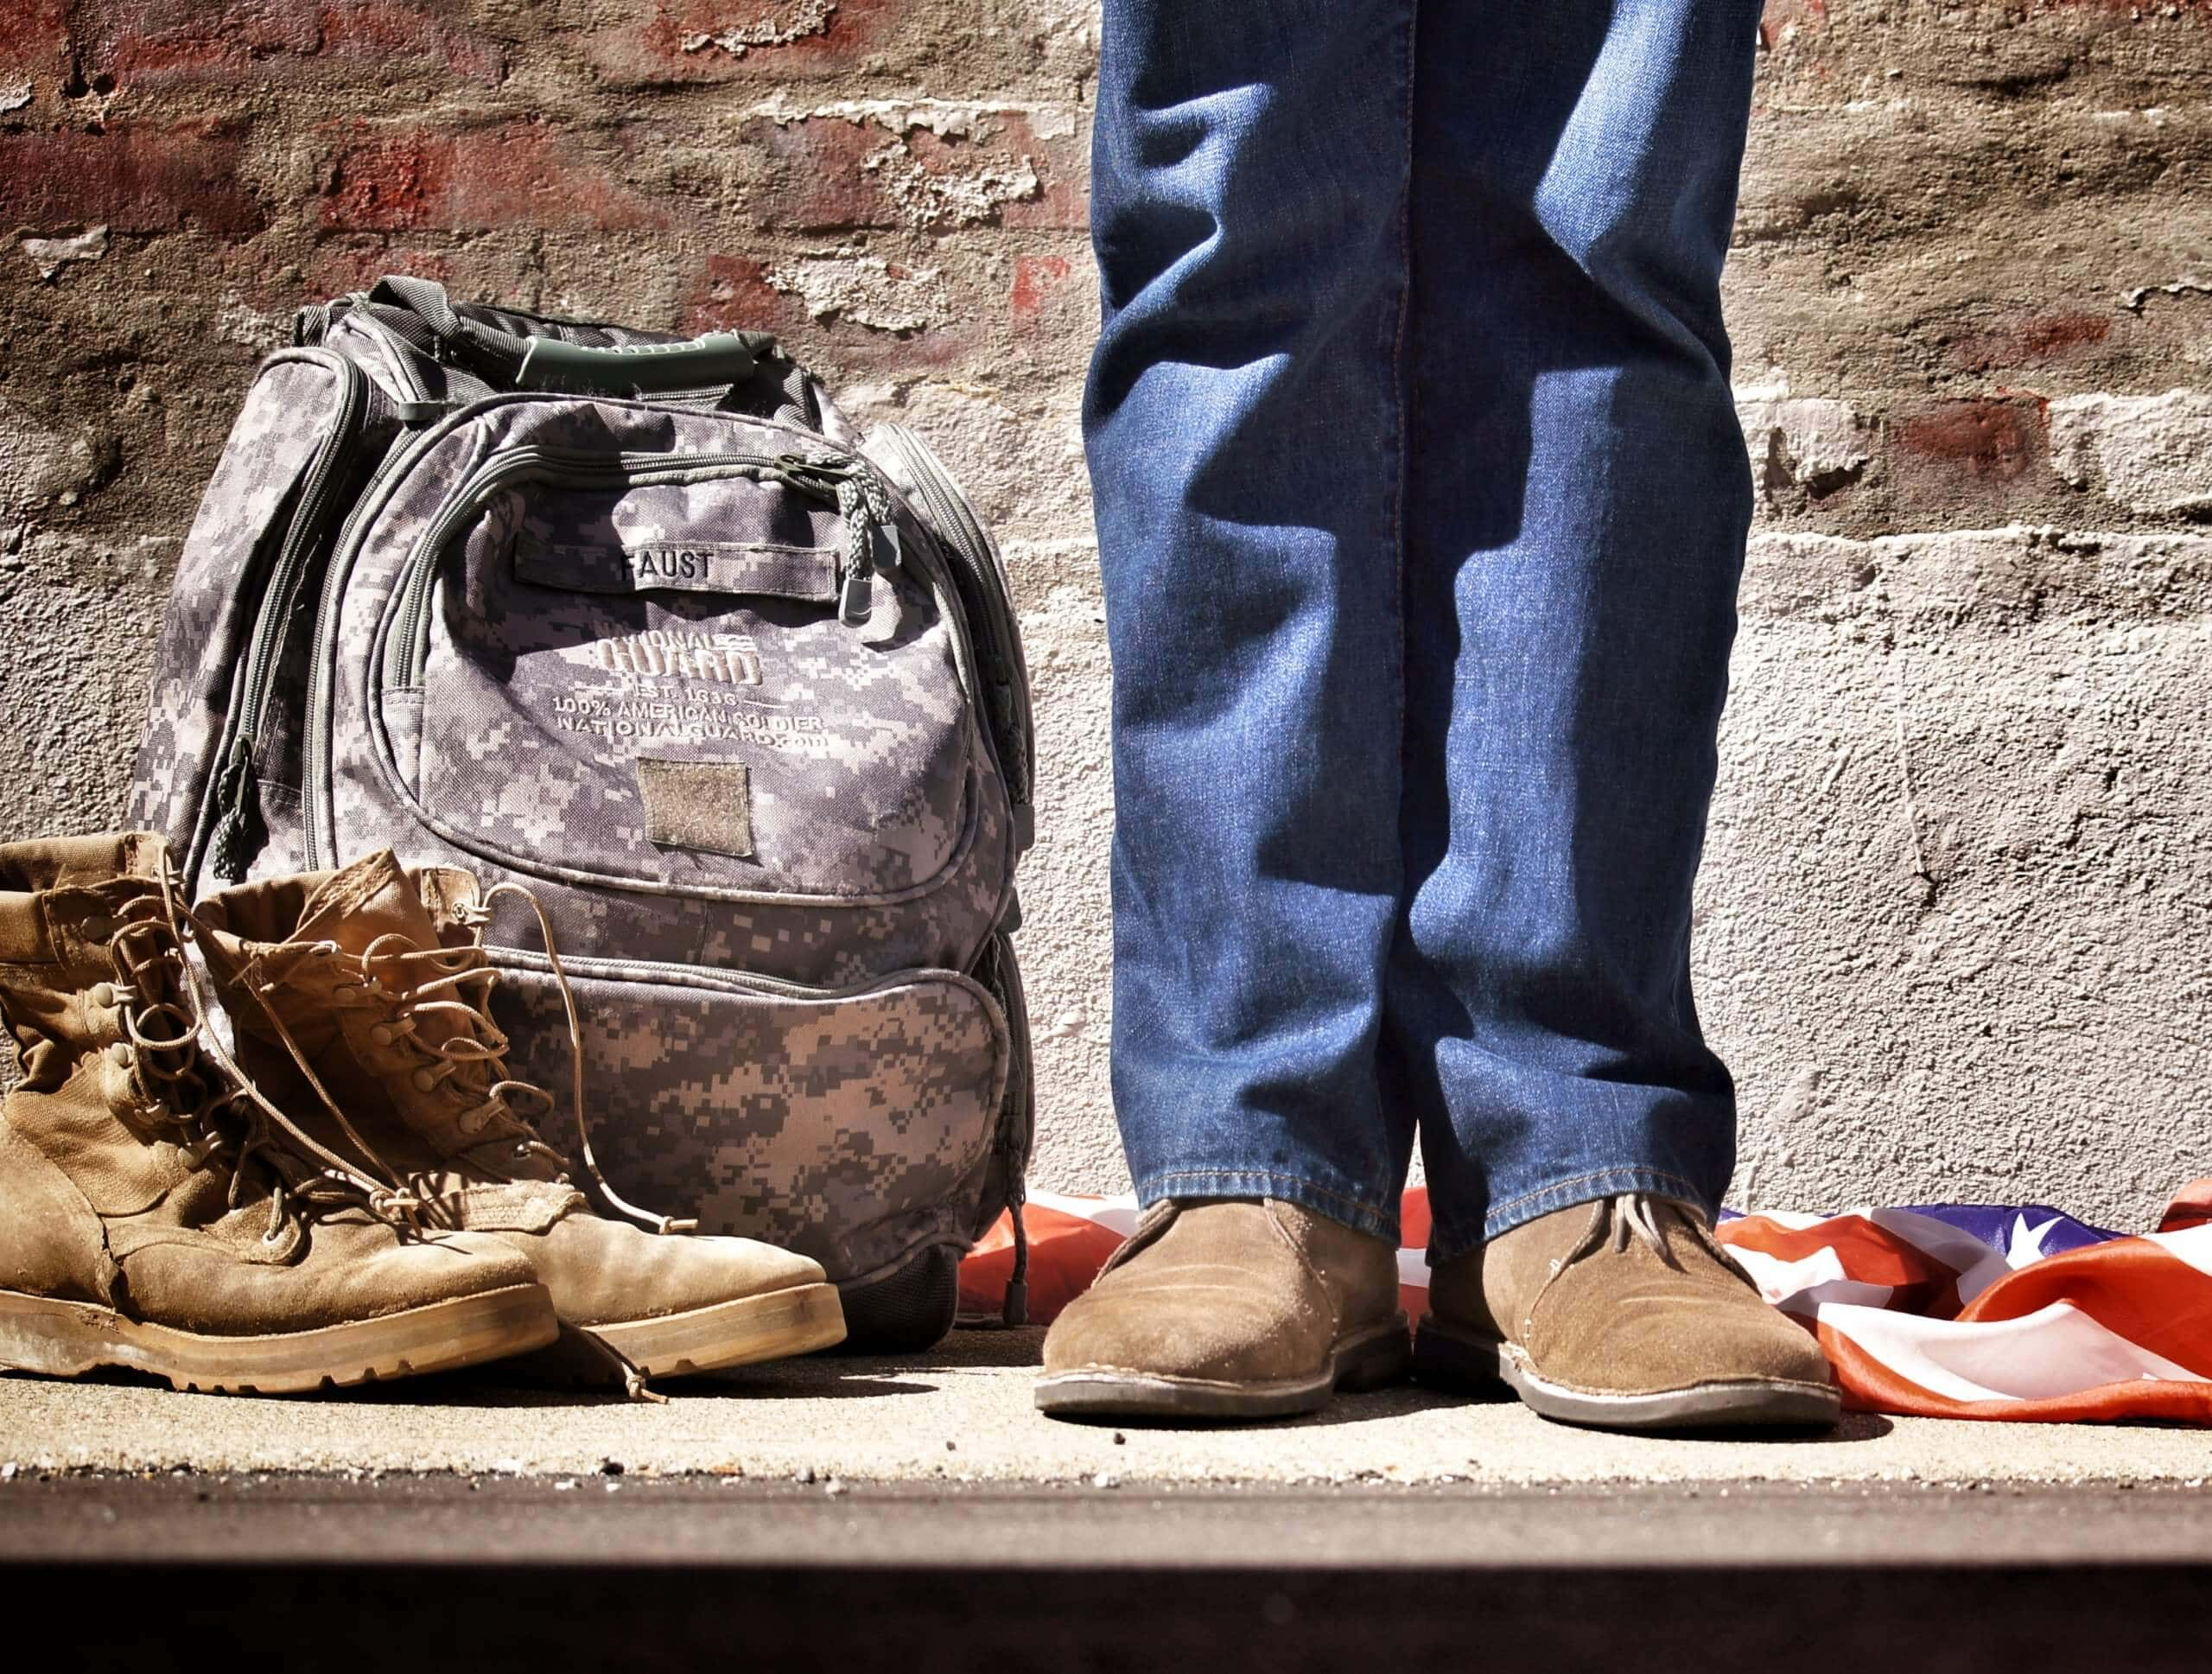 Military boots, backpack and feet